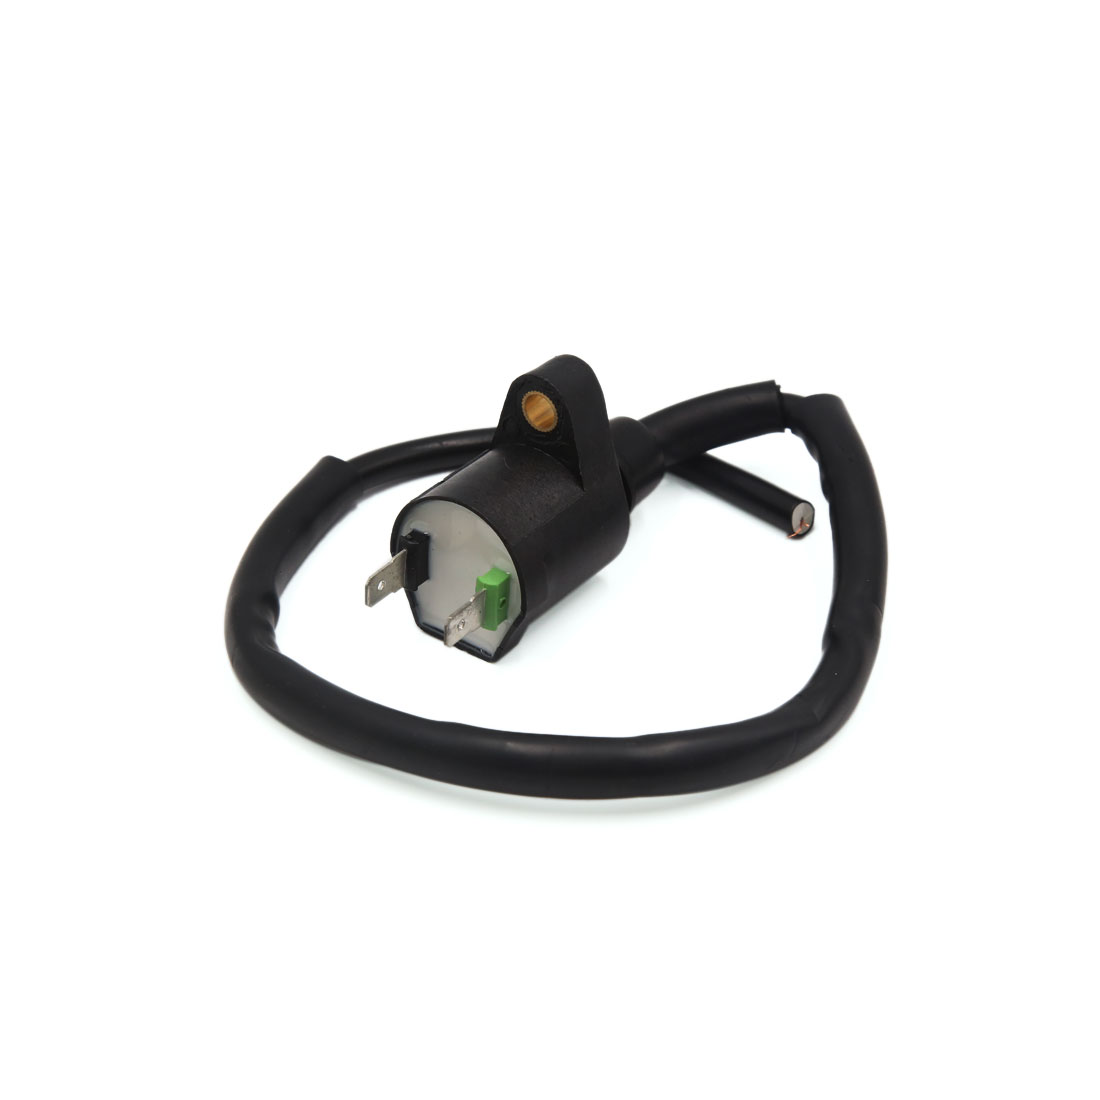 38cm Length Black Scooter Motorcycle Ignition Coil Wire Assembly for GY6 125